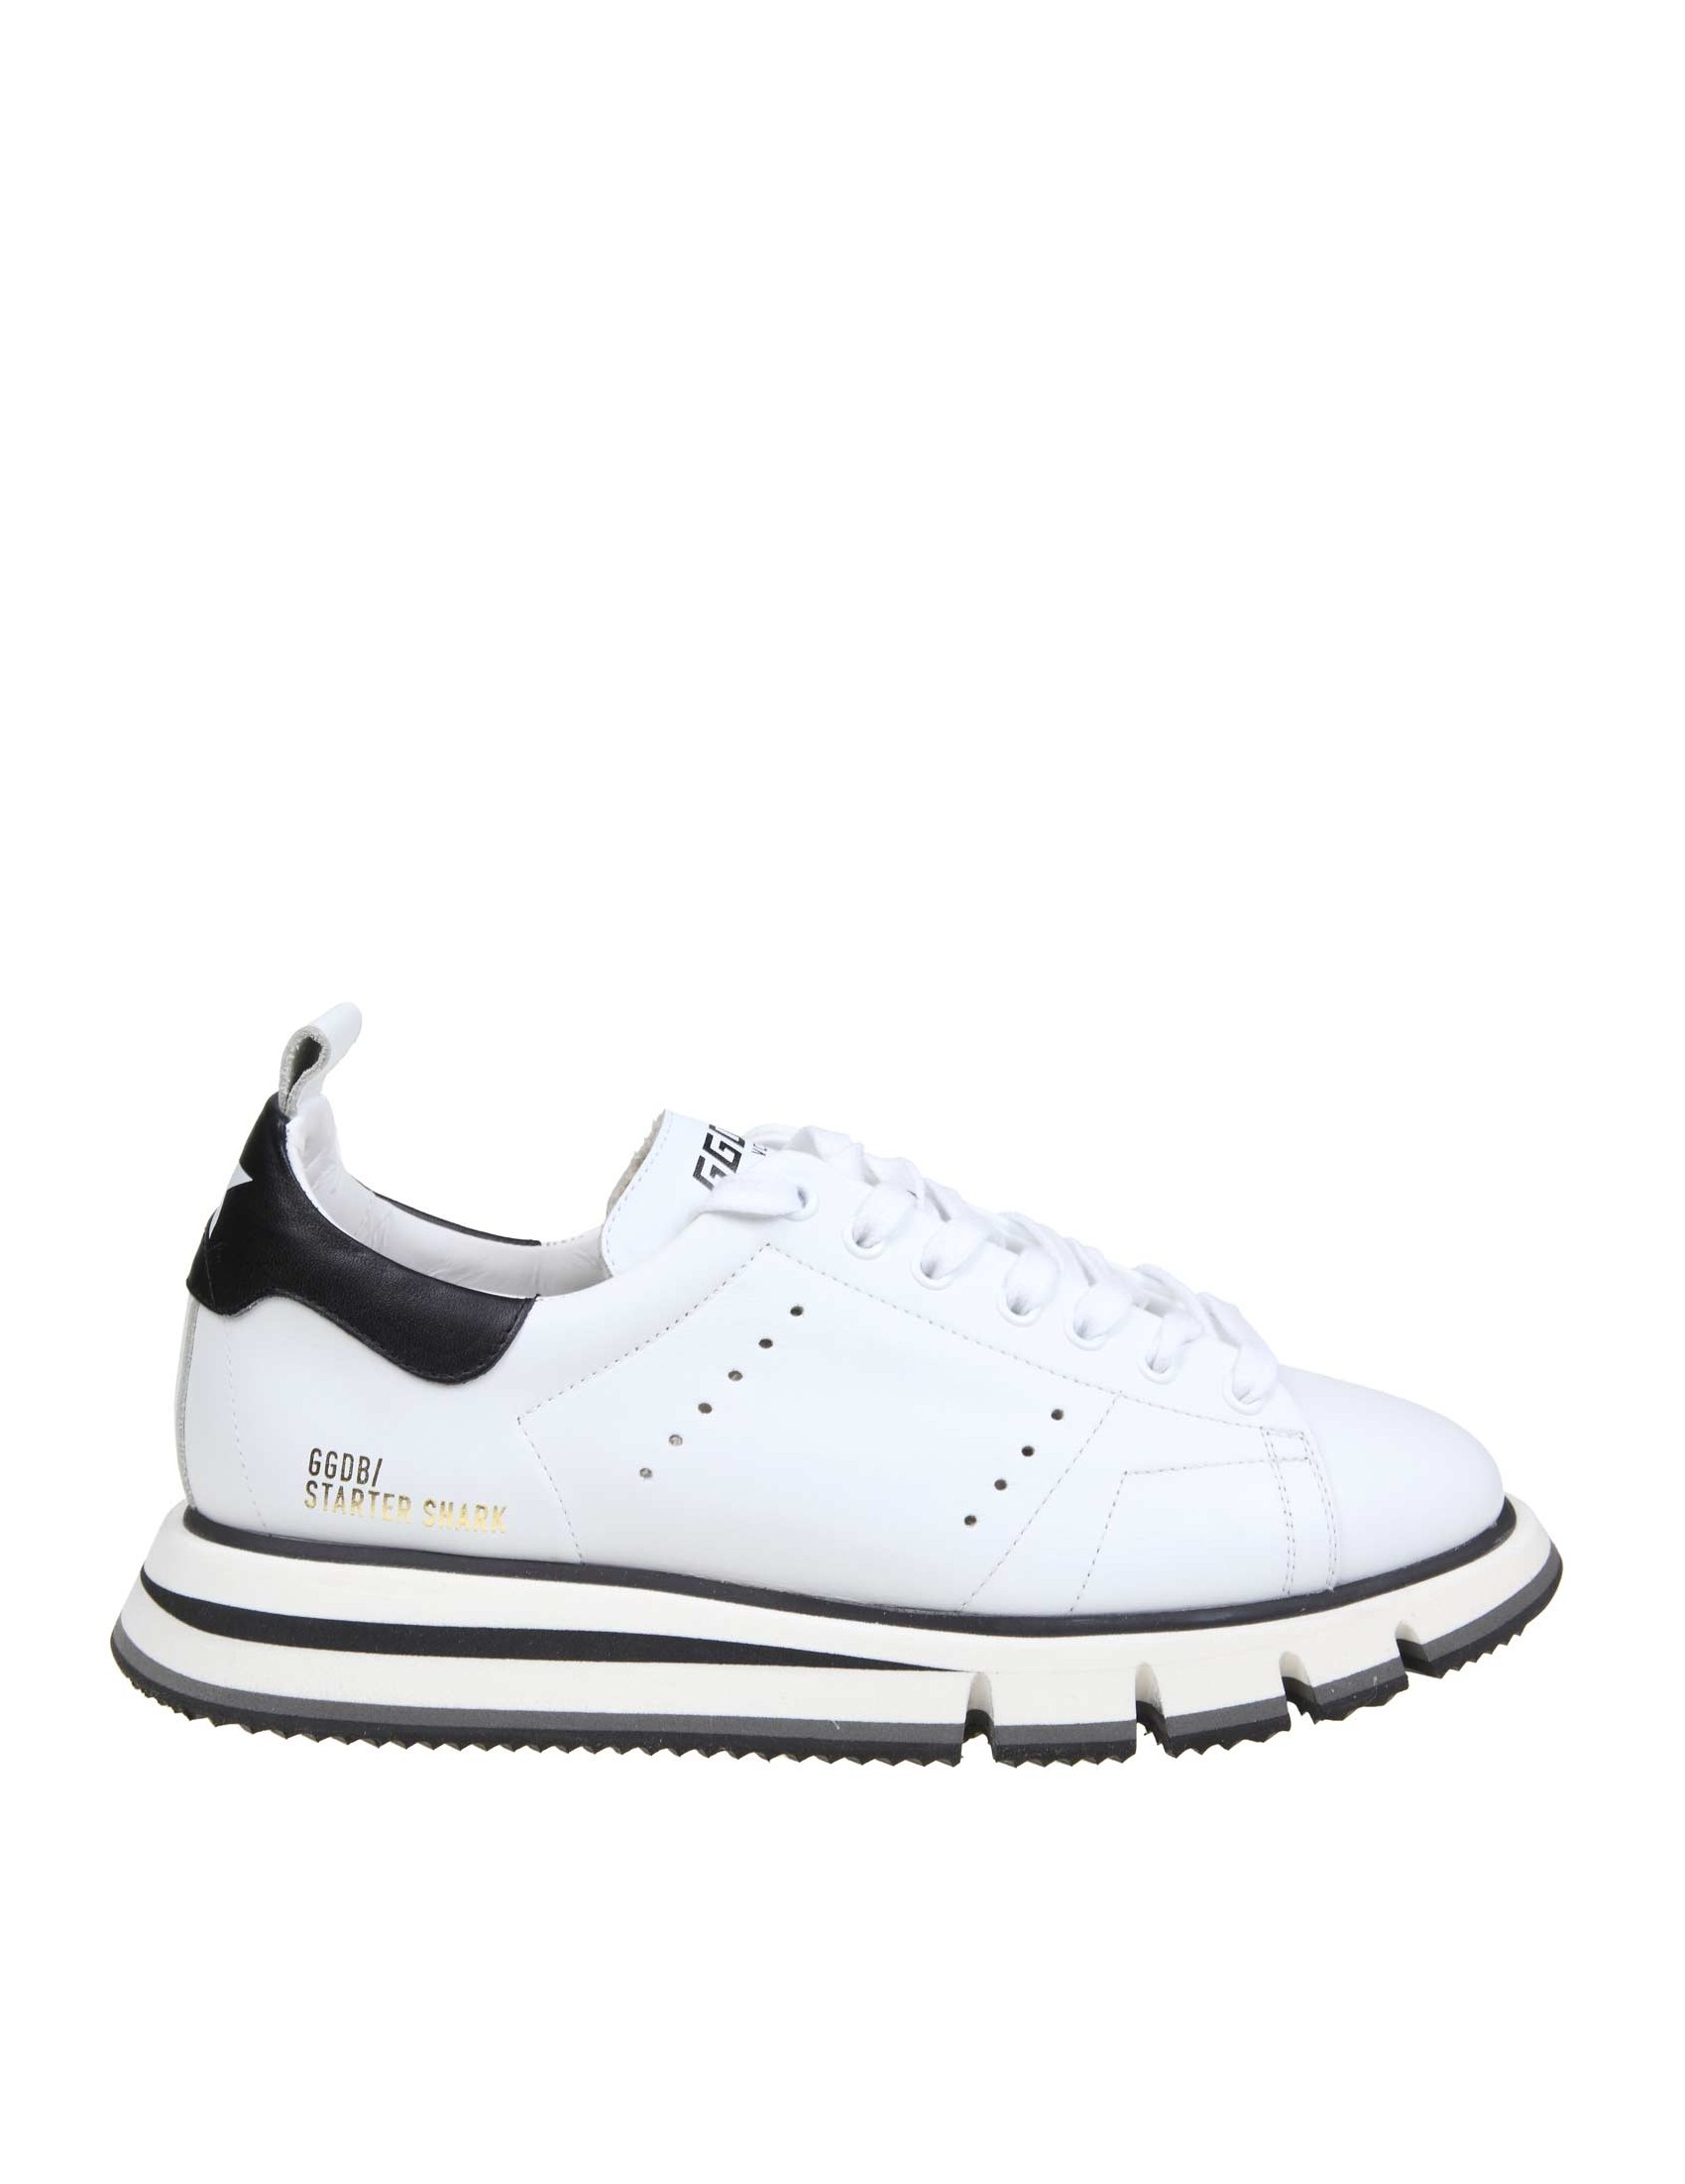 nuovo di zecca c5fe4 a07be GOLDEN GOOSE SNEAKERS STARTER SHARK IN WHITE LEATHER